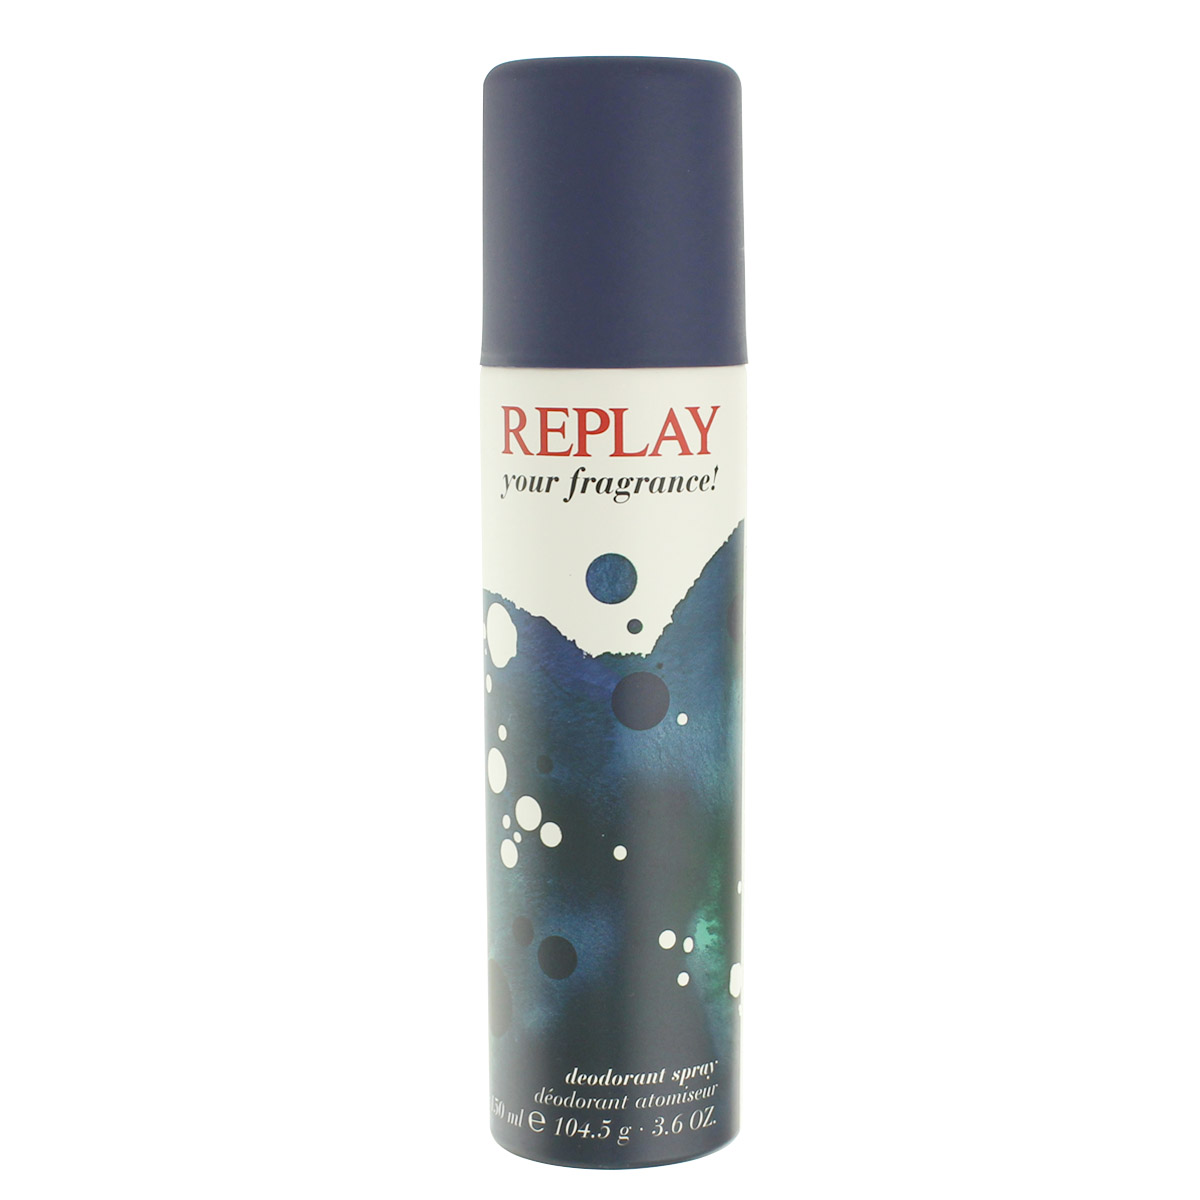 Replay your fragrance! for Men DEO ve spreji 150 ml M